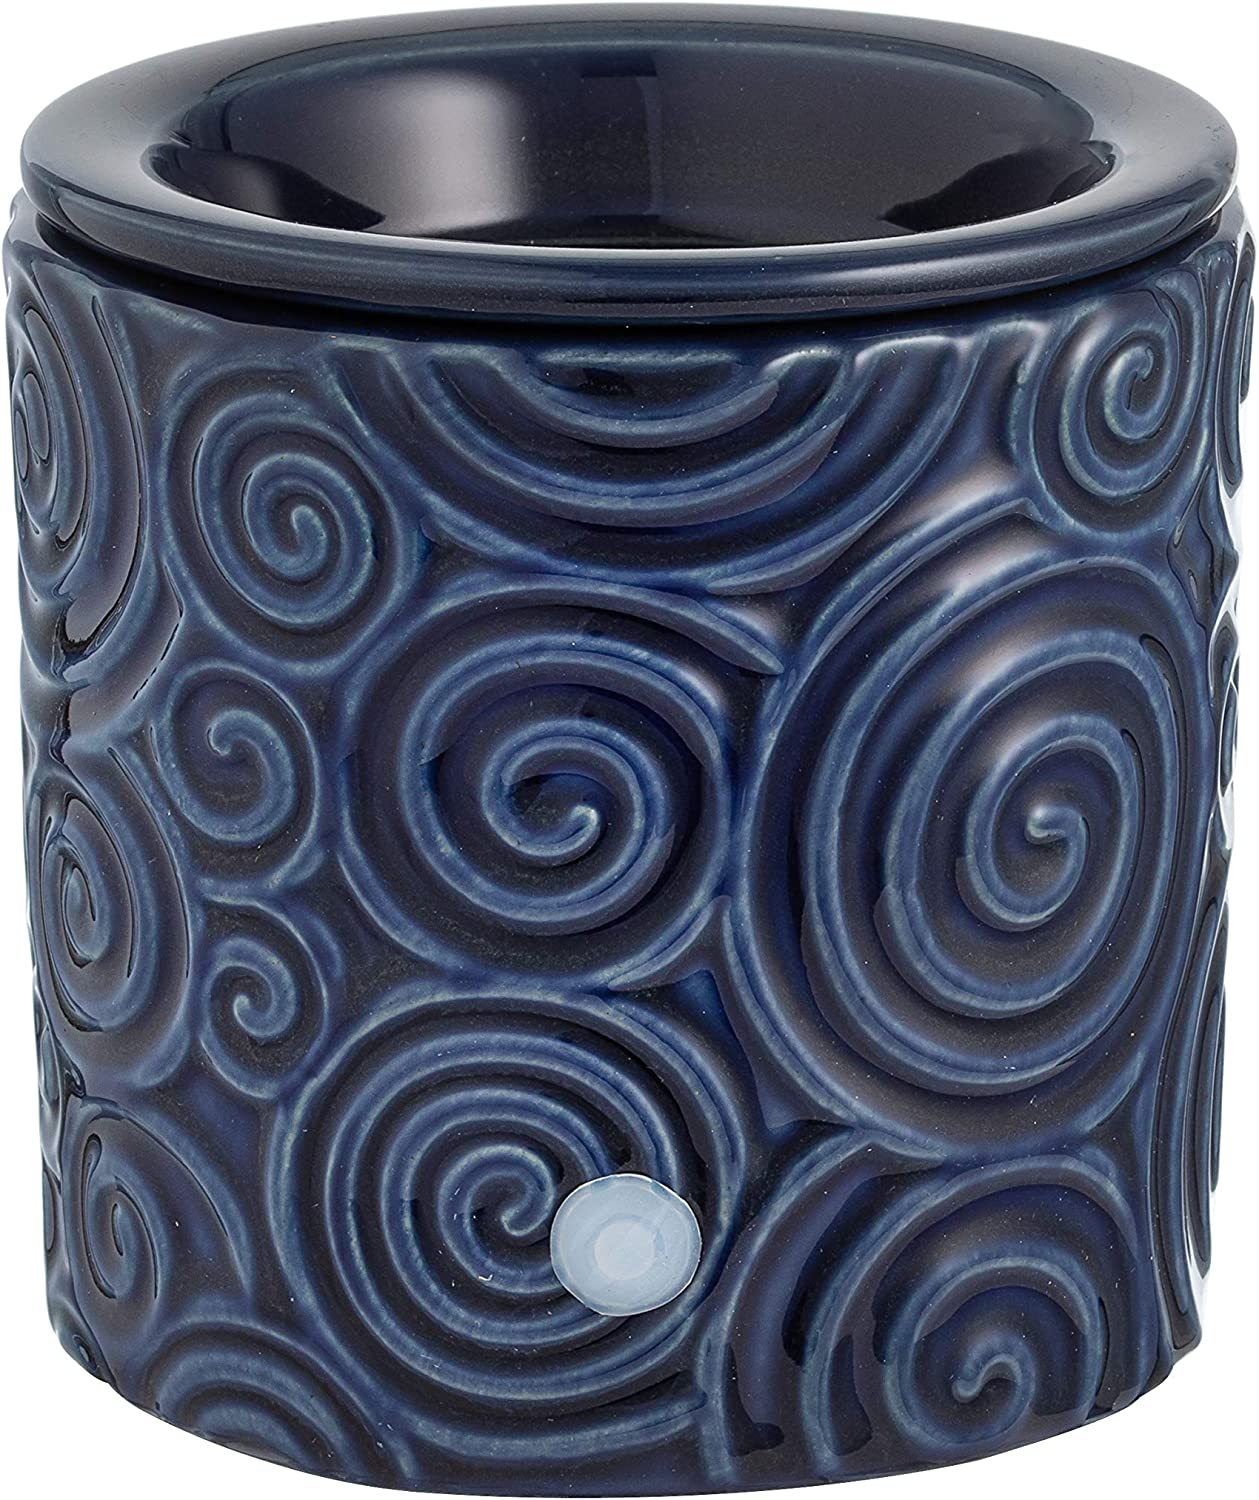 Blue Swirl Ceramic Candle Warmer Electric with Safety Timer | Automatic On/Off Plug in Fragrance Warmer for Scented Wax Melts, Cubes, Tarts | Air Freshener Set for Home Décor, Office, and Gifts